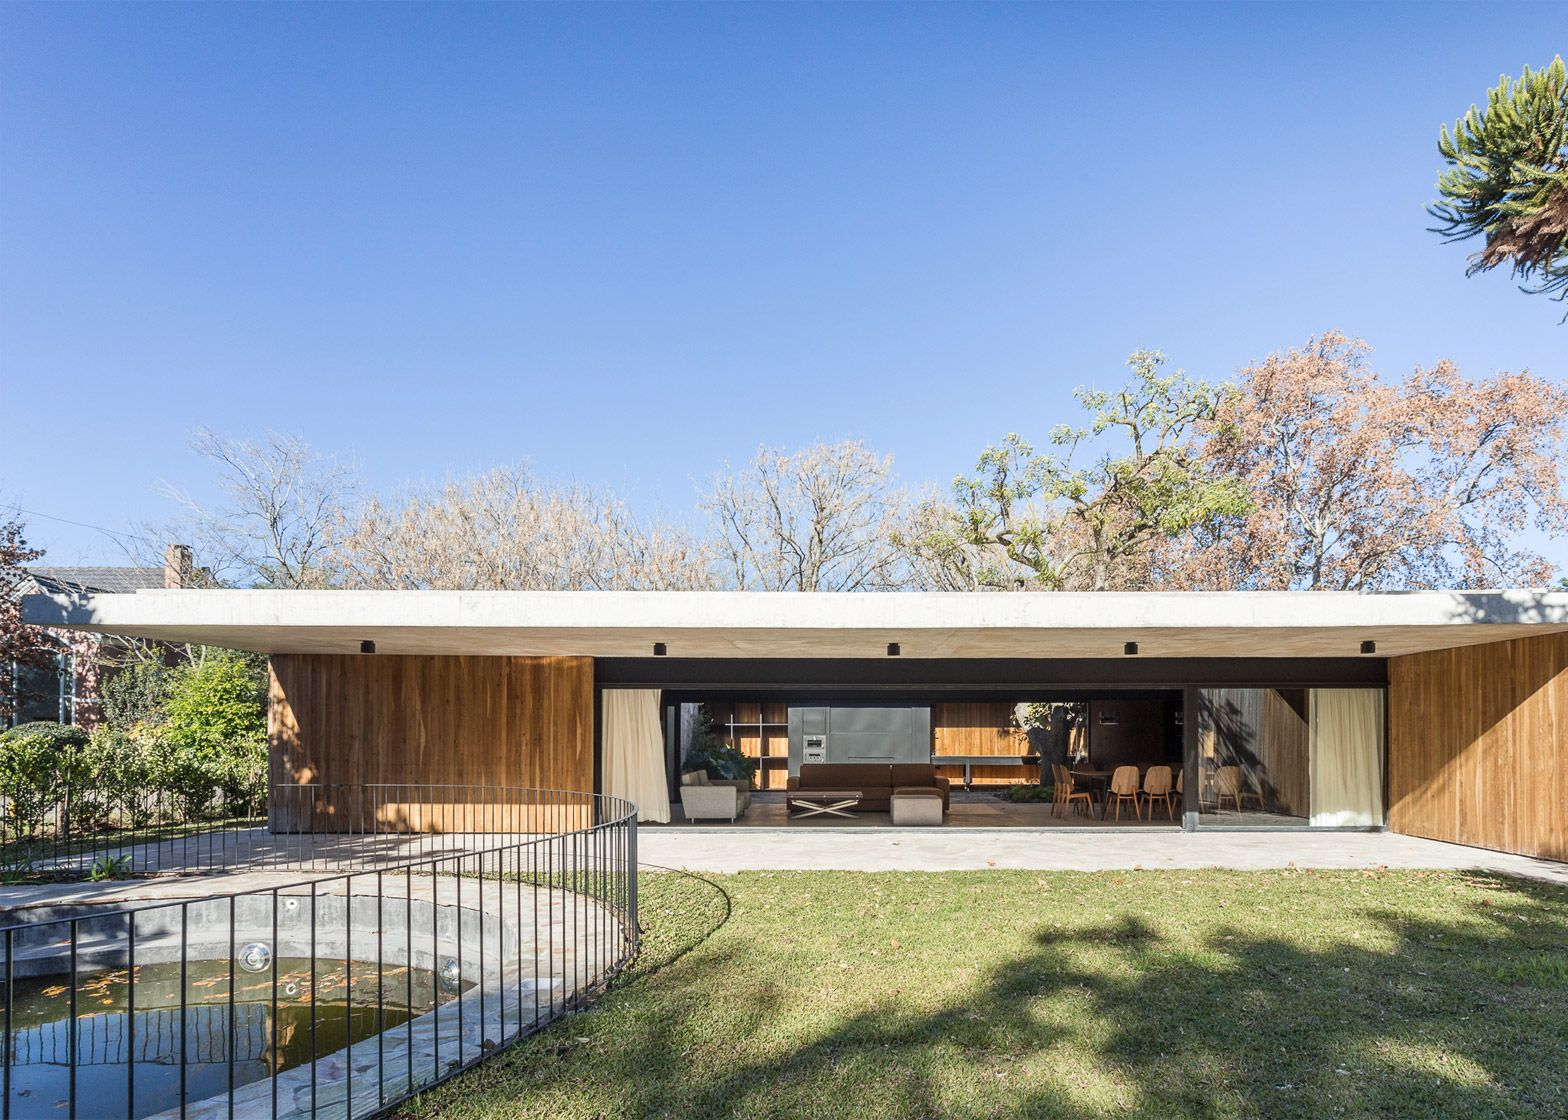 Marcelo Del Torto builds concrete home in Argentina around mature trees and plunge pool